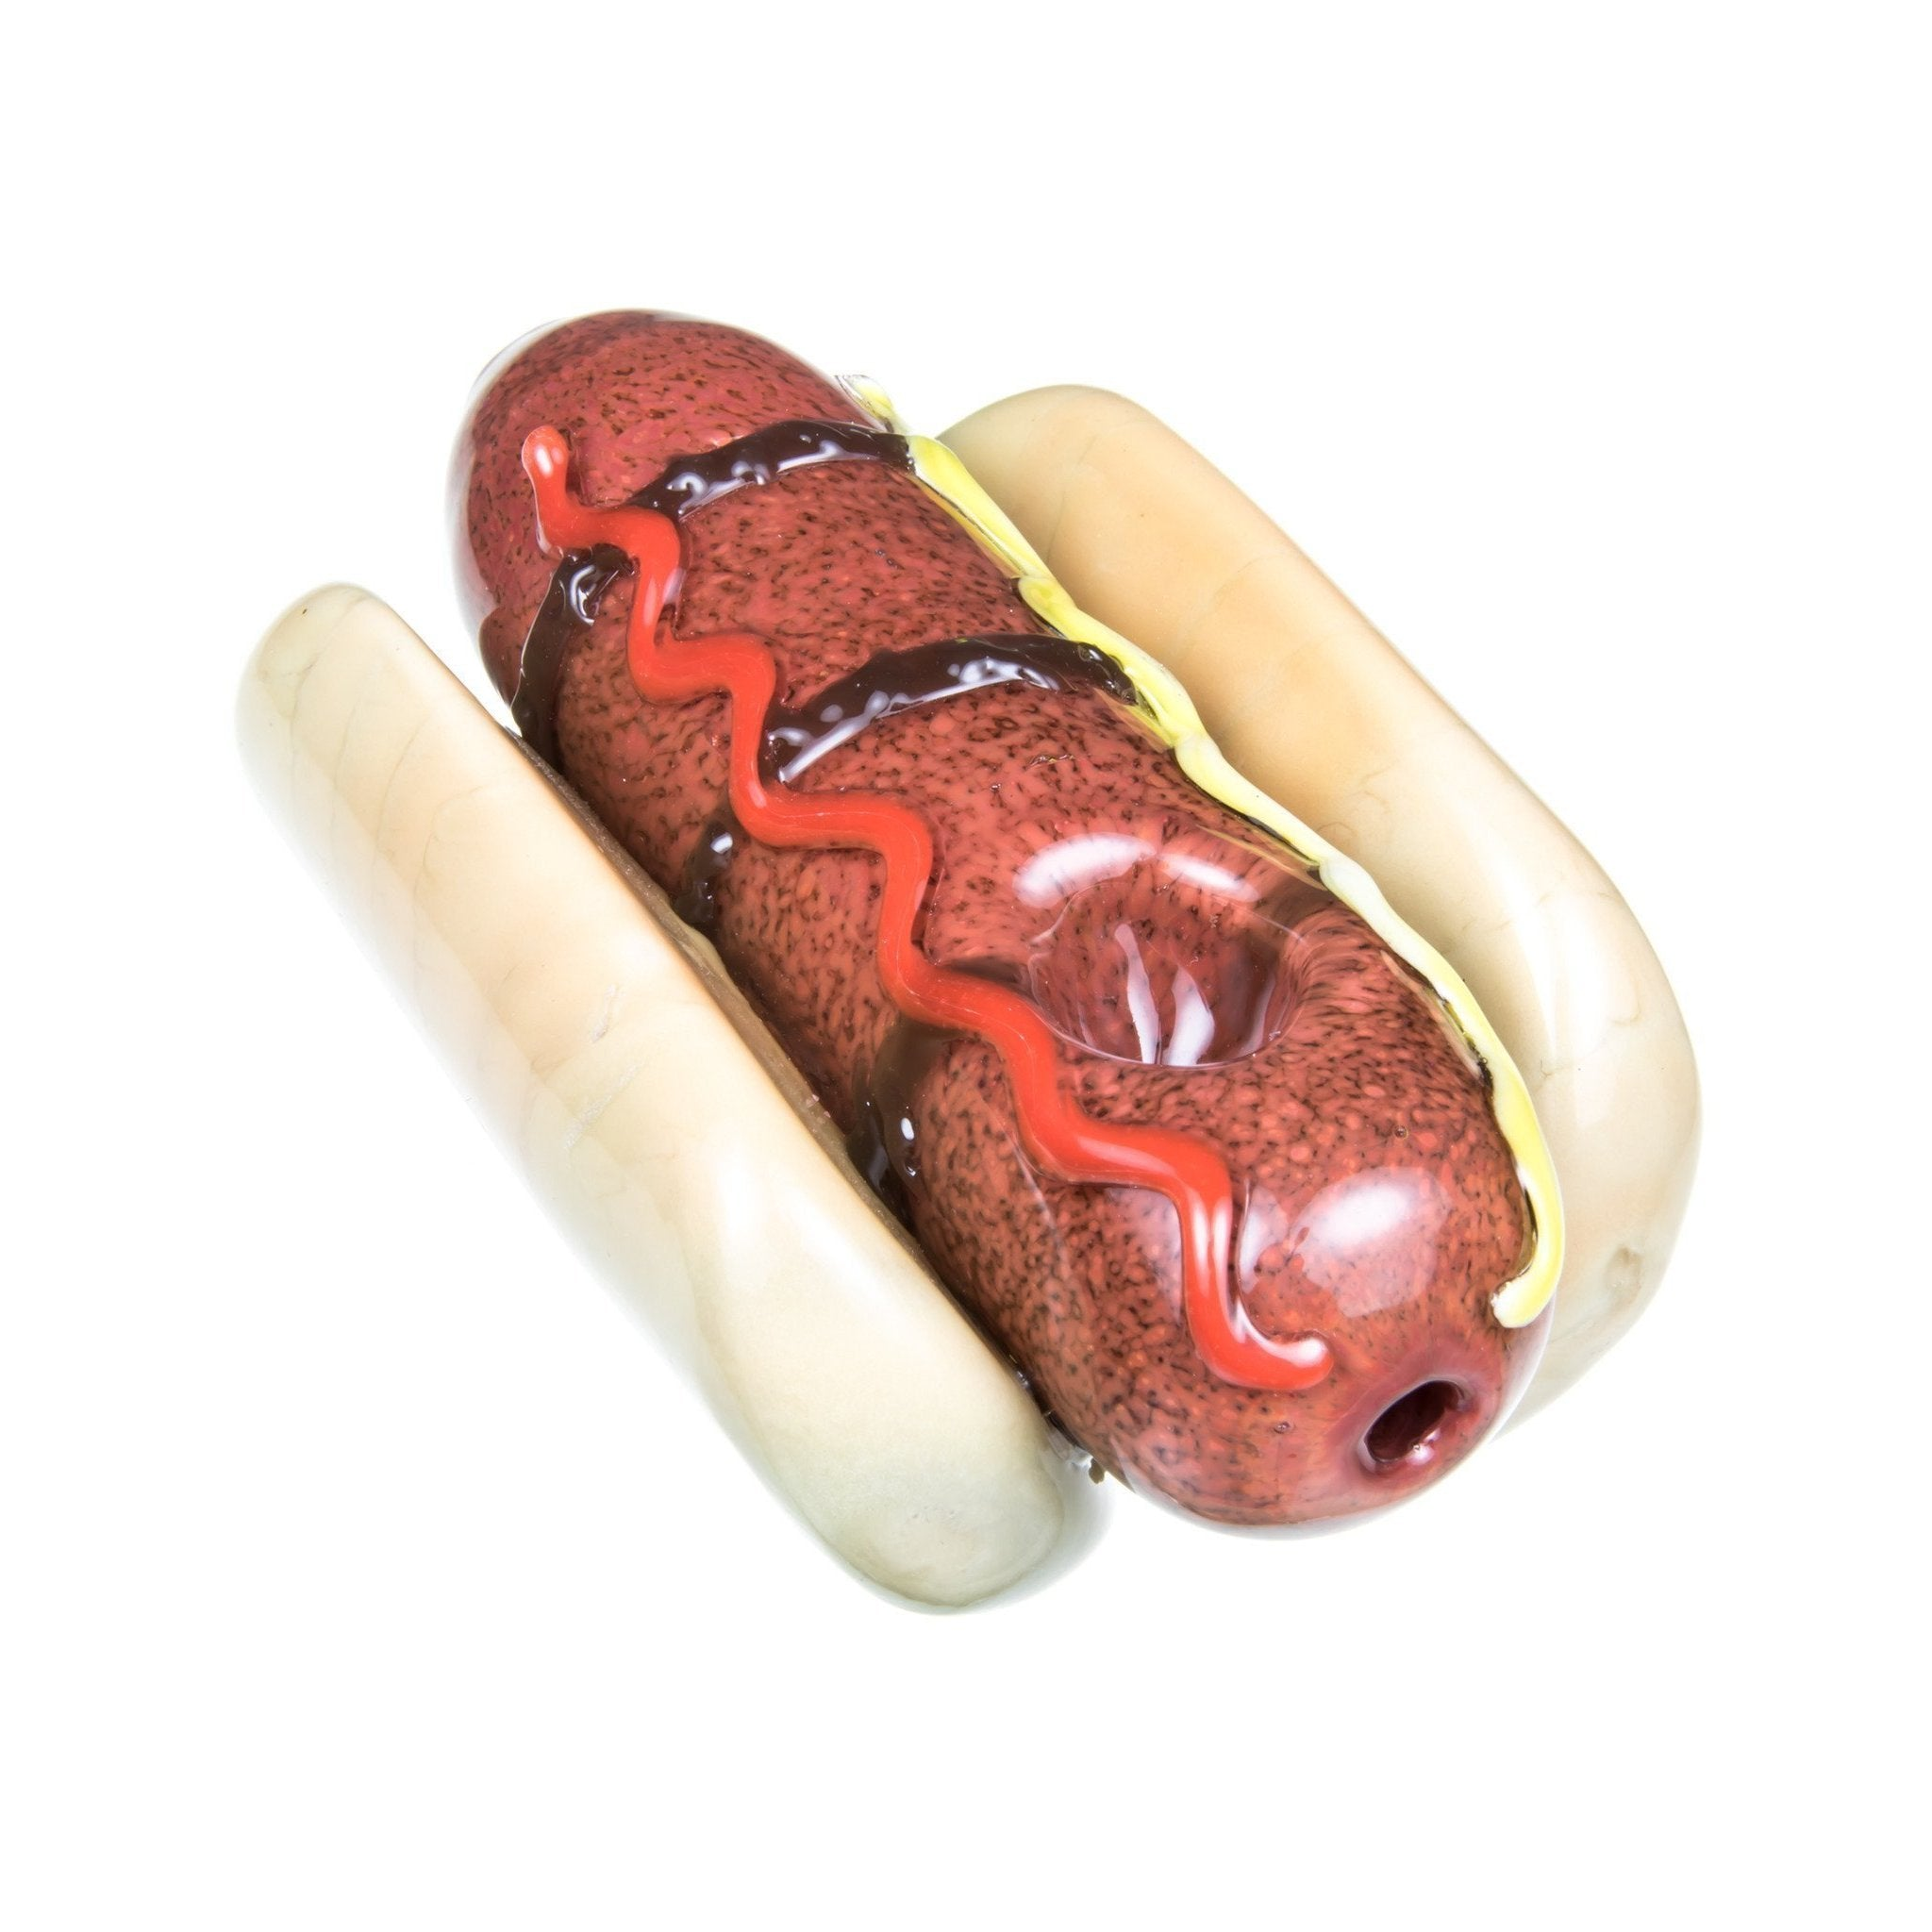 Hot Dog Steamroller